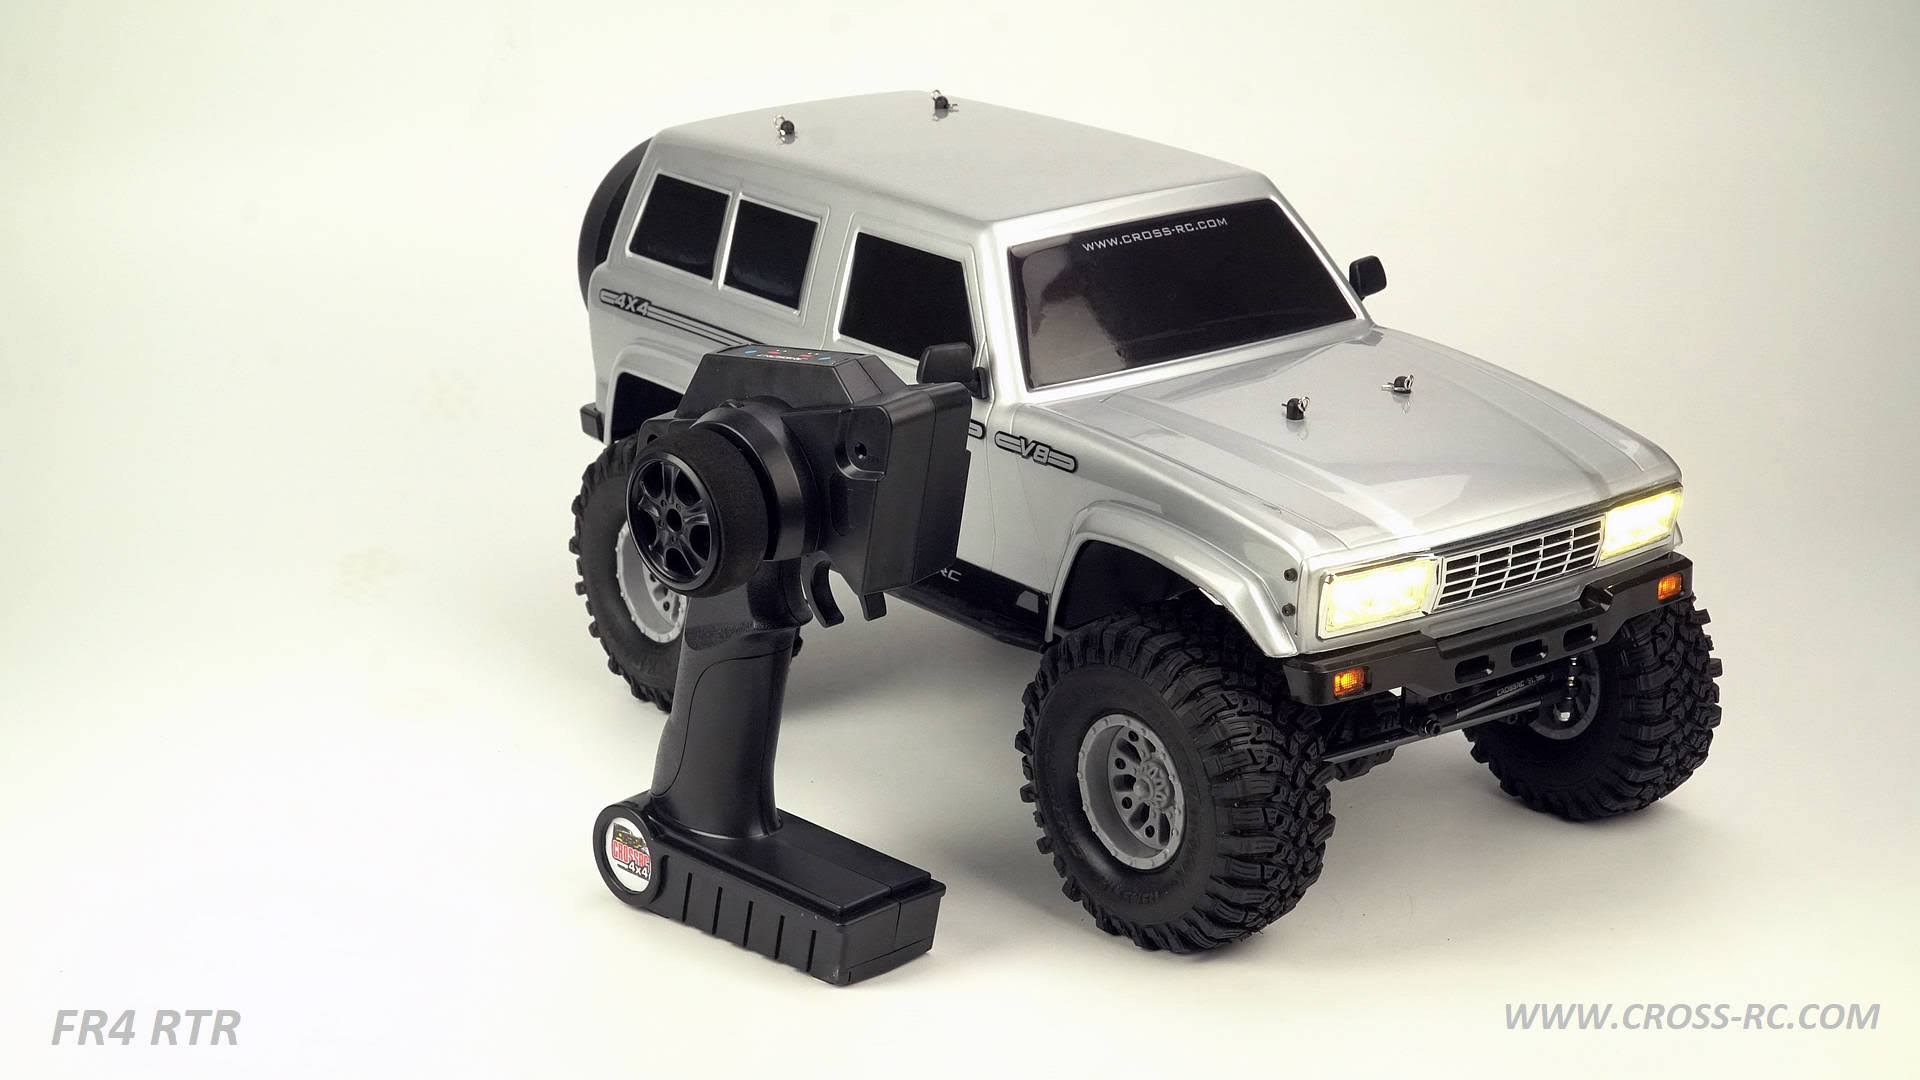 Cross RC - FR4 1/10 Demon 4x4 Rtr; No Battery or Charger - Gunmetal